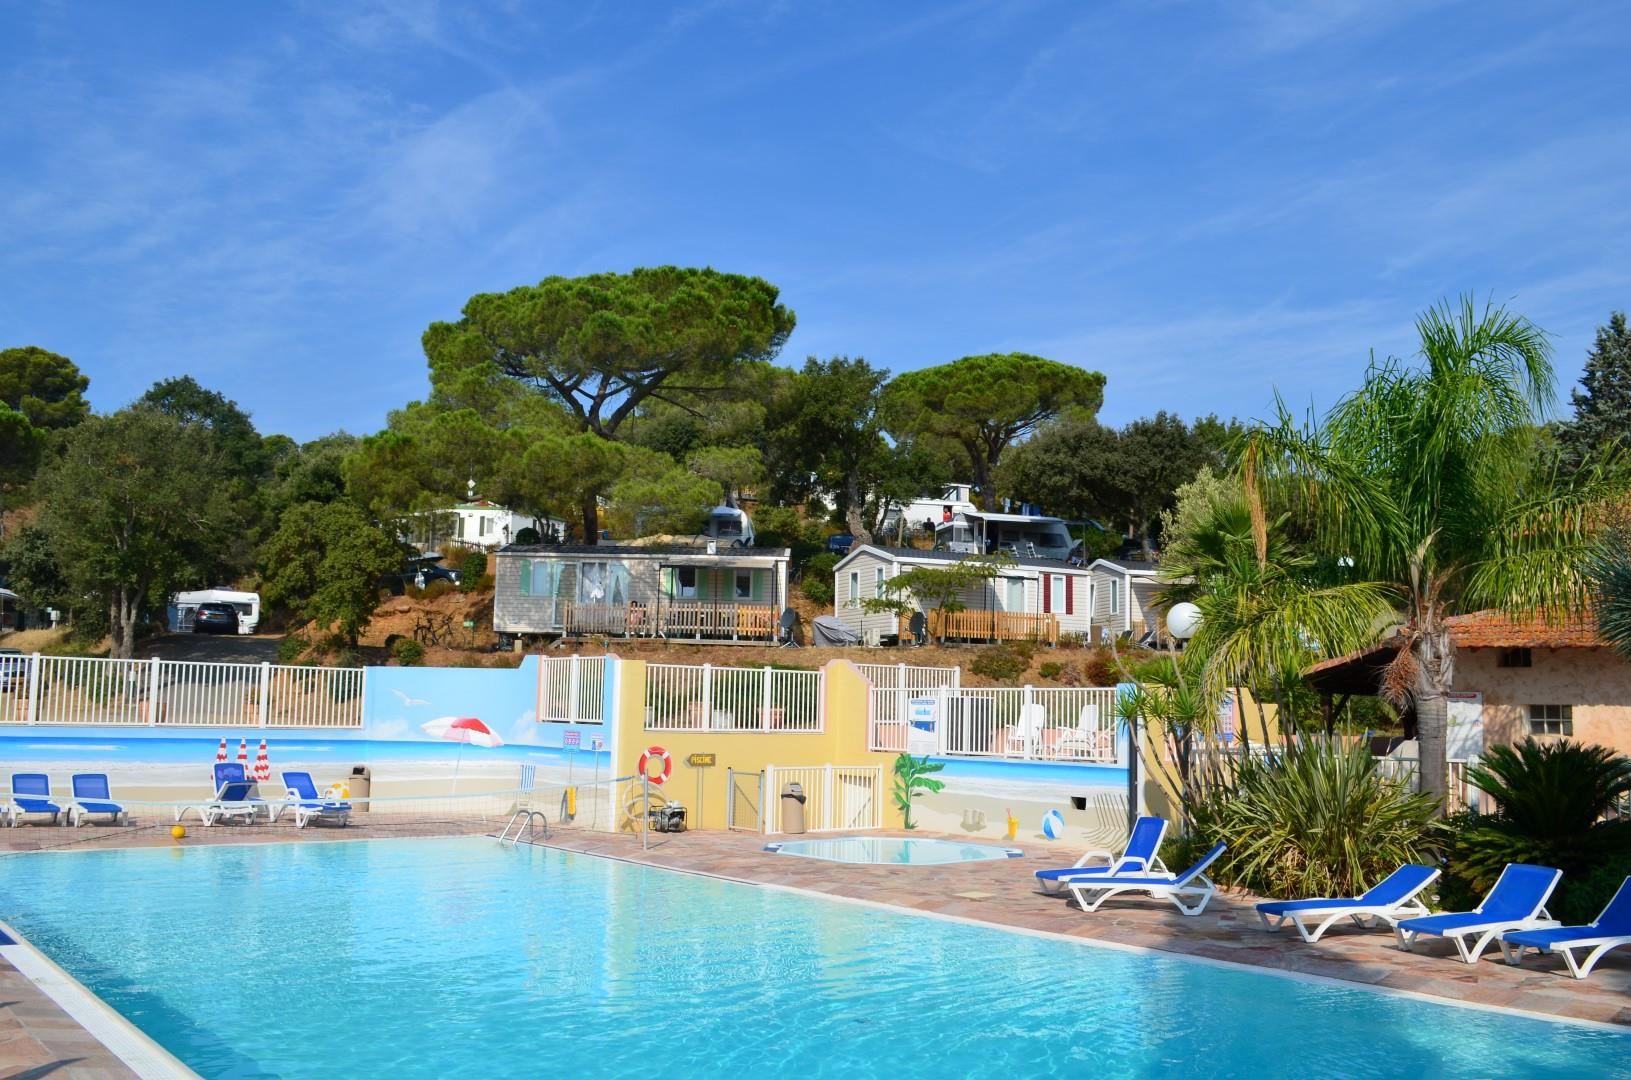 Camping Les Lauriers Roses - Saint-Aygulf